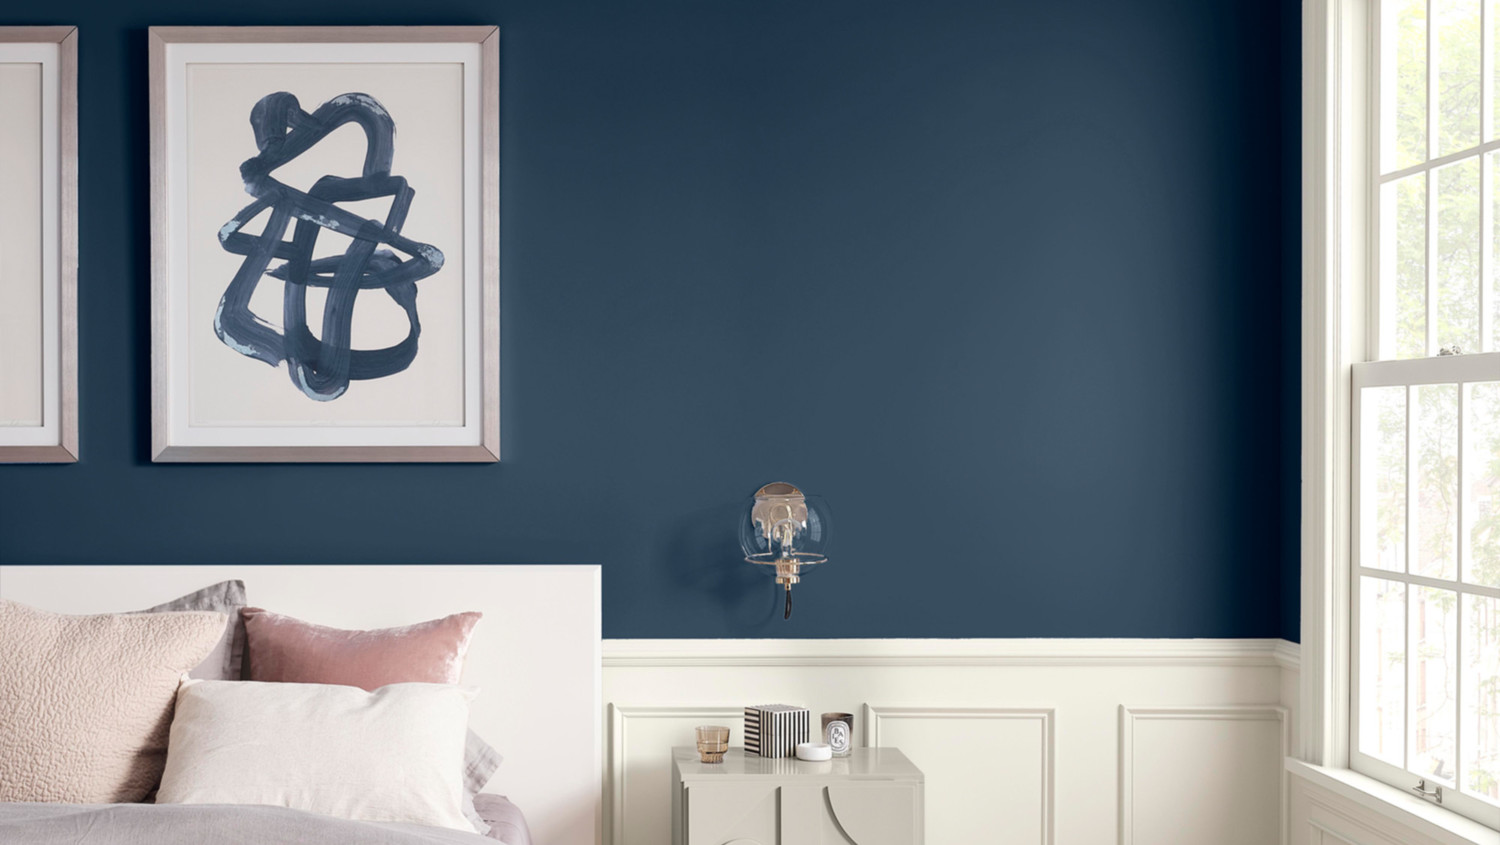 Sherwin-Willliams Just Revealed Its 2020 Color of the Year—and Nautical Fans Will Love It